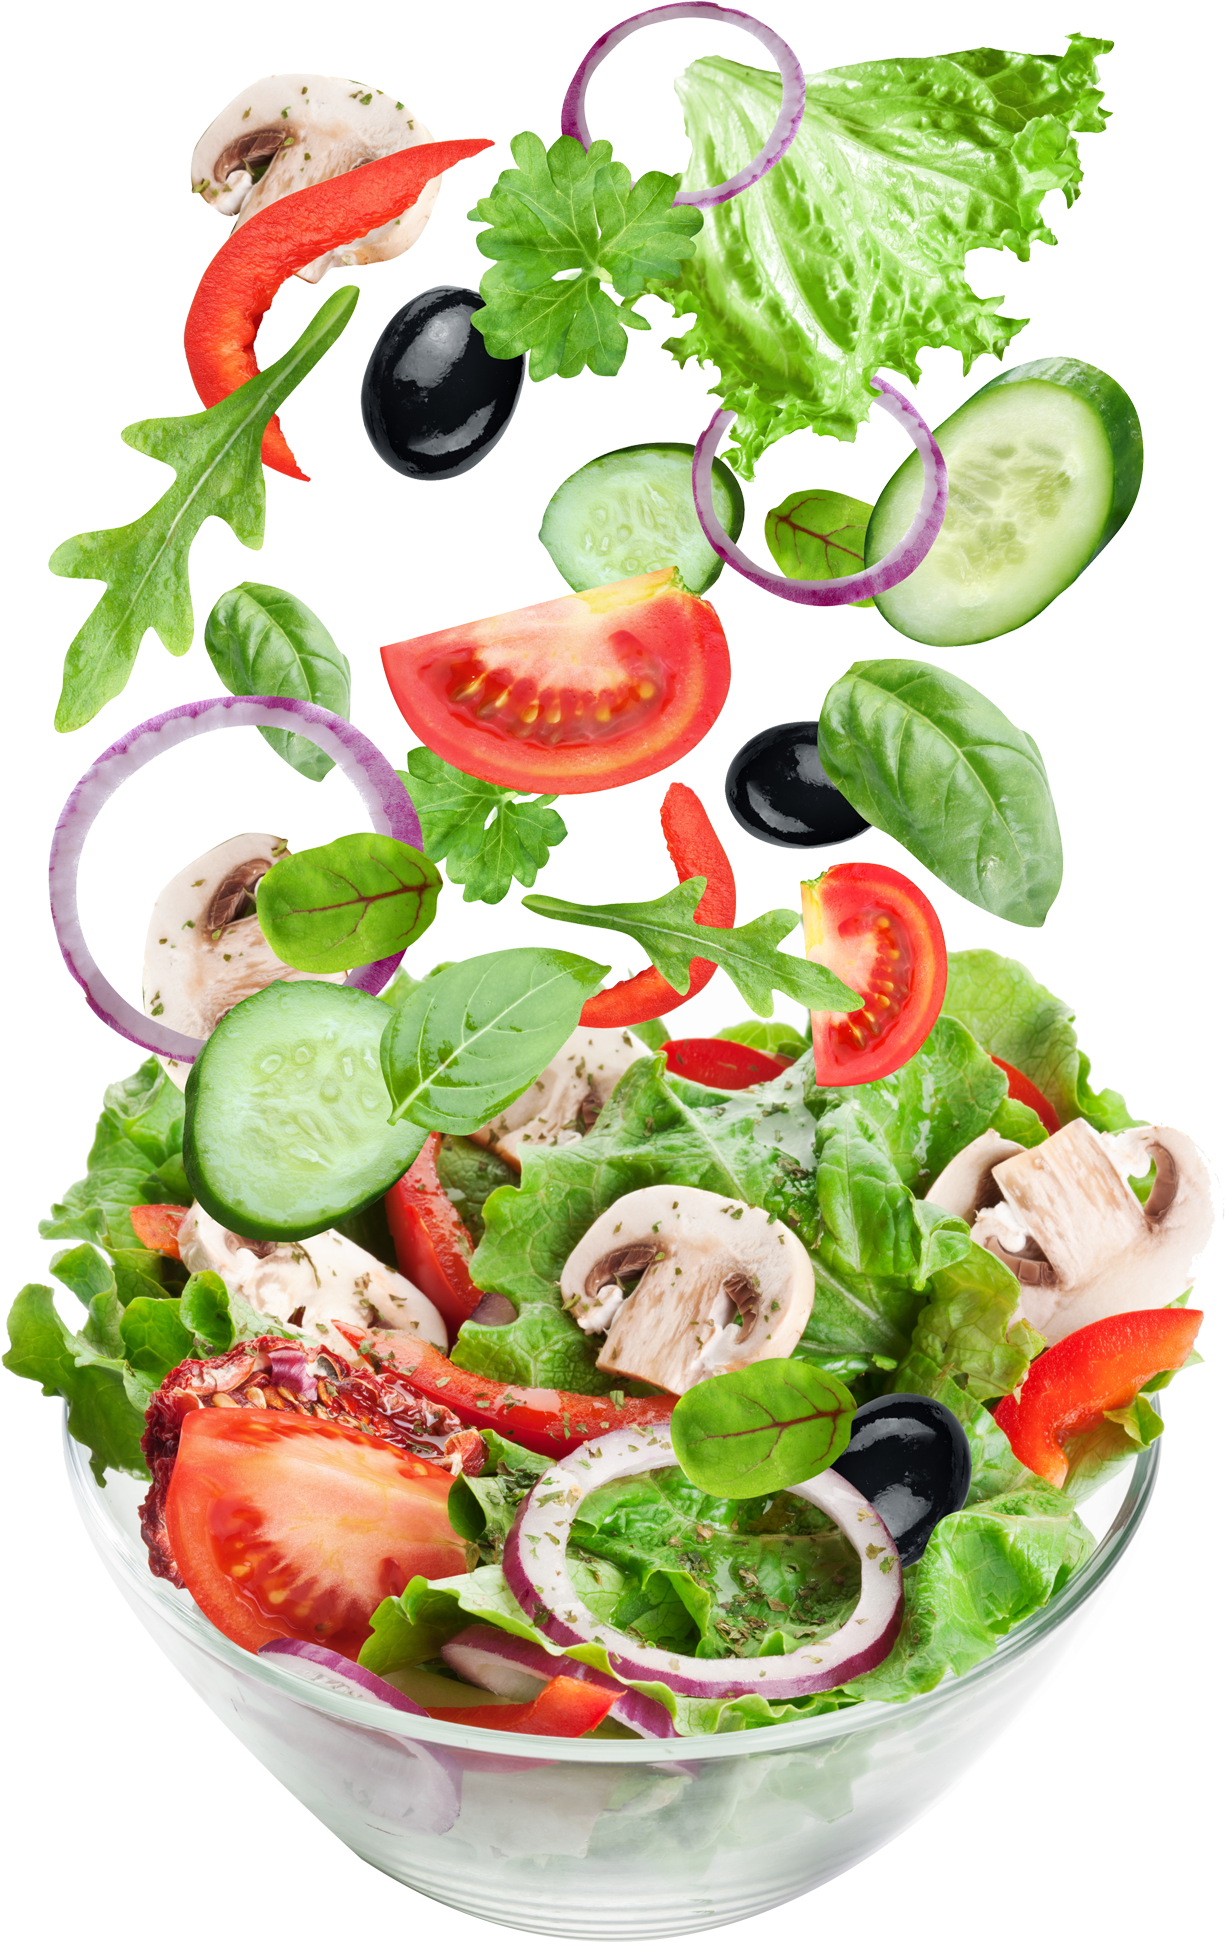 Salad Bar Png.